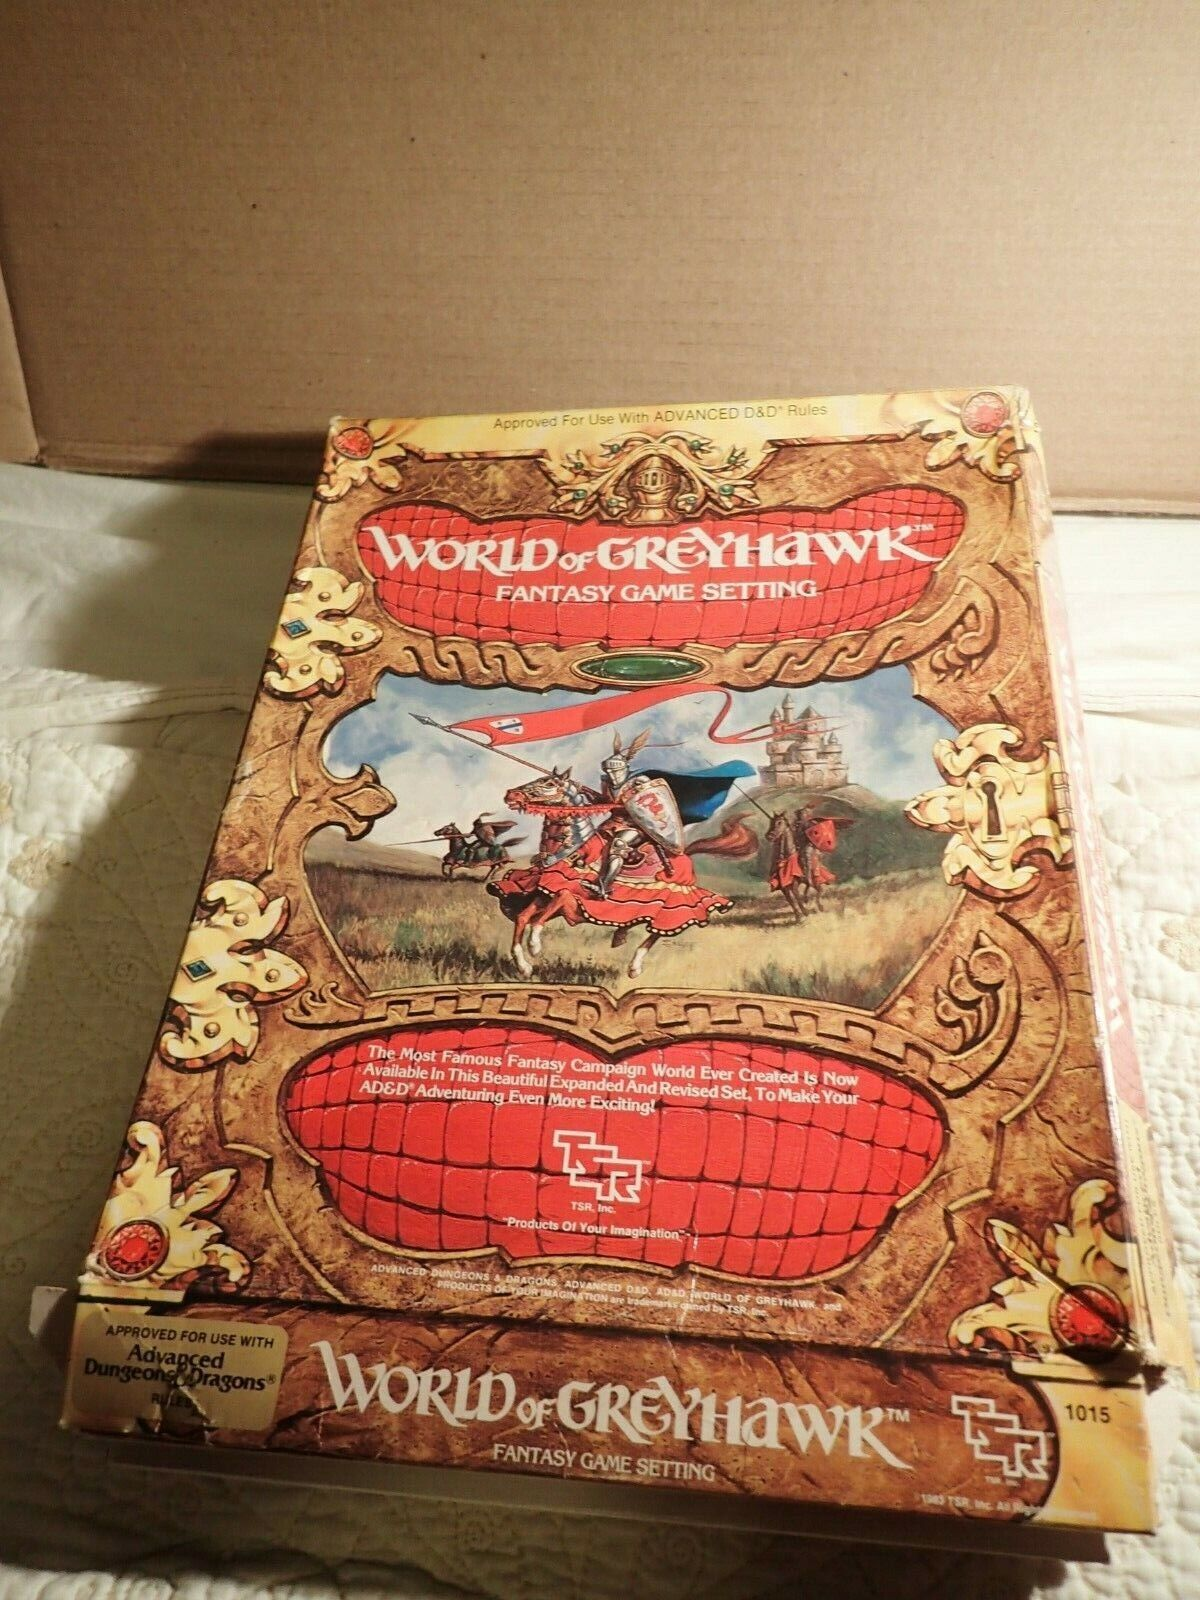 World of Greyhawk (TSR 1015) 1015) 1015) Dungeons & Dragons Campaign Setting boxed Gygax HTF 923c5d